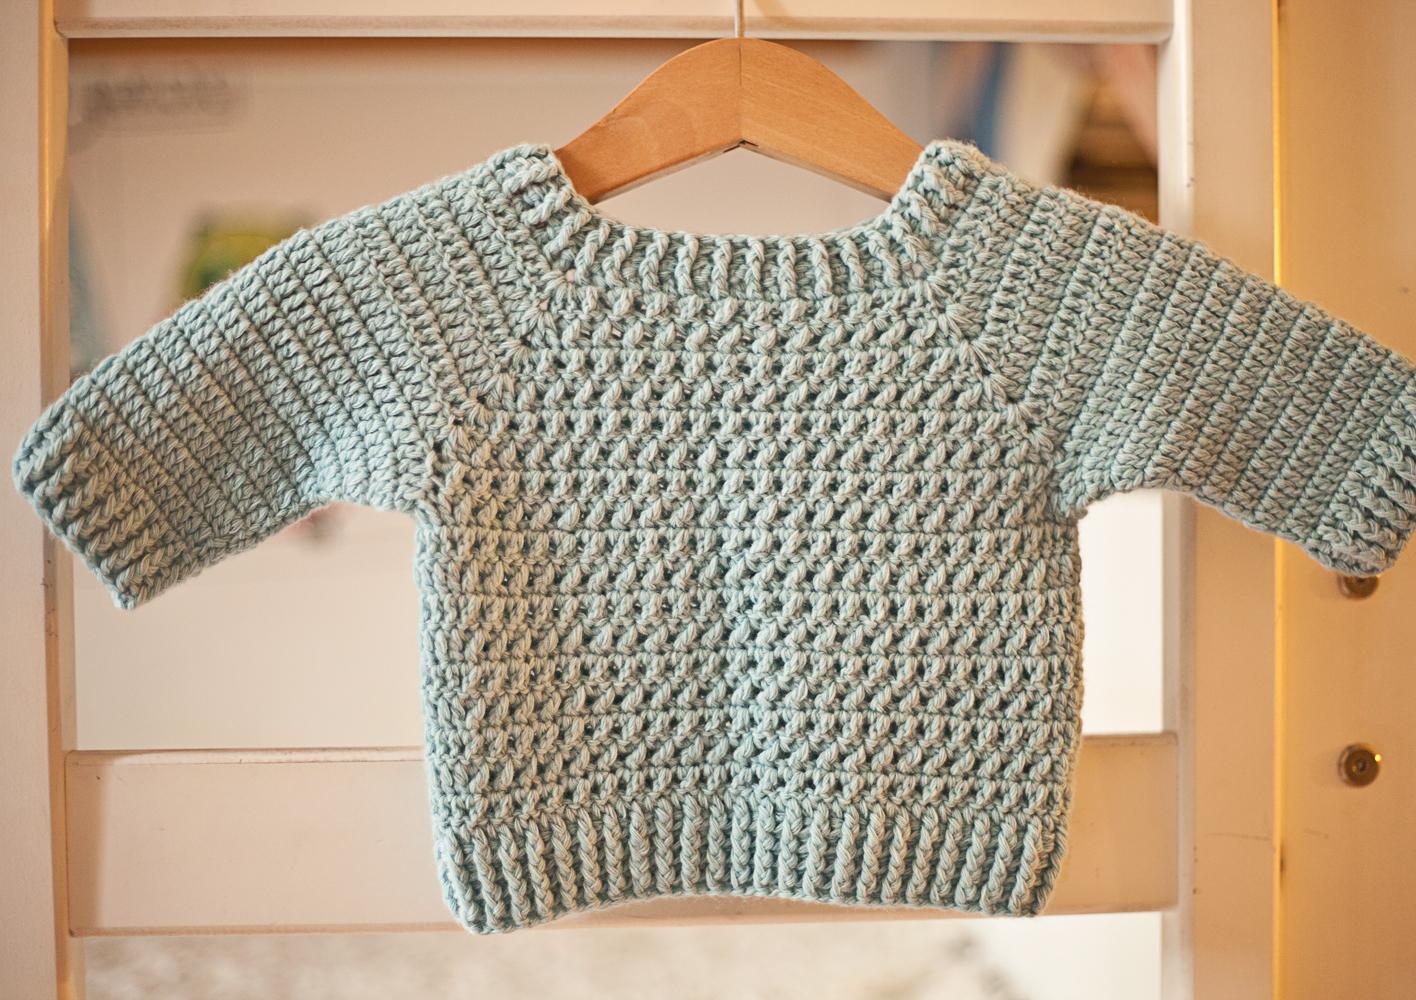 Crochet For Boys Check Out Our New Sweater Pattern Mon Petit Violon